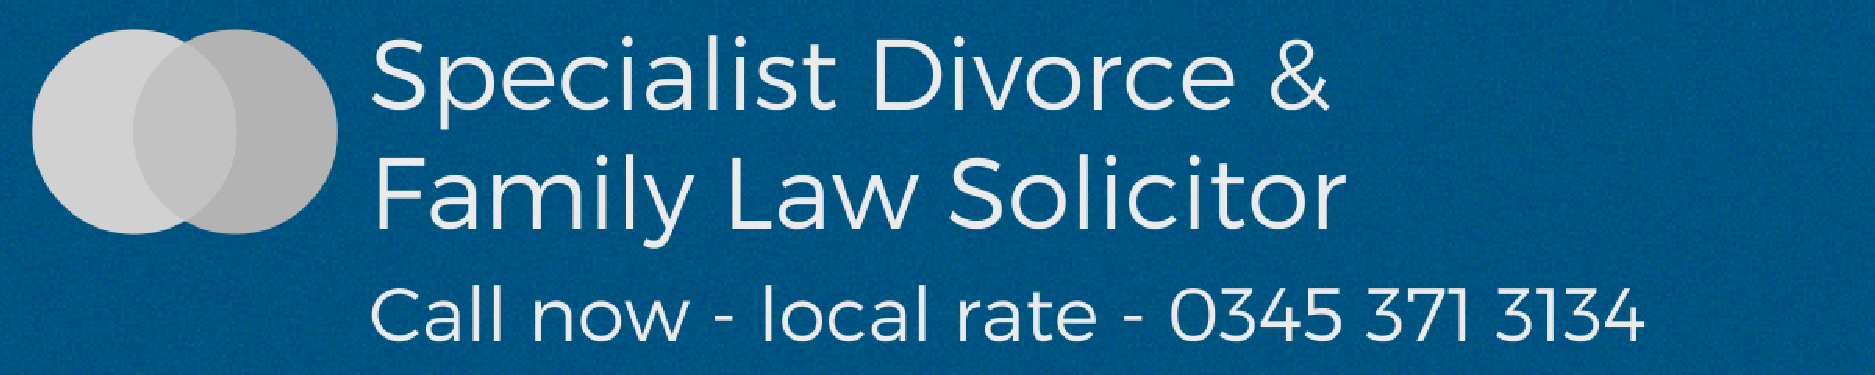 Specialist Divorce and Family Law Solicitor - Maidstone & Medway - Kent